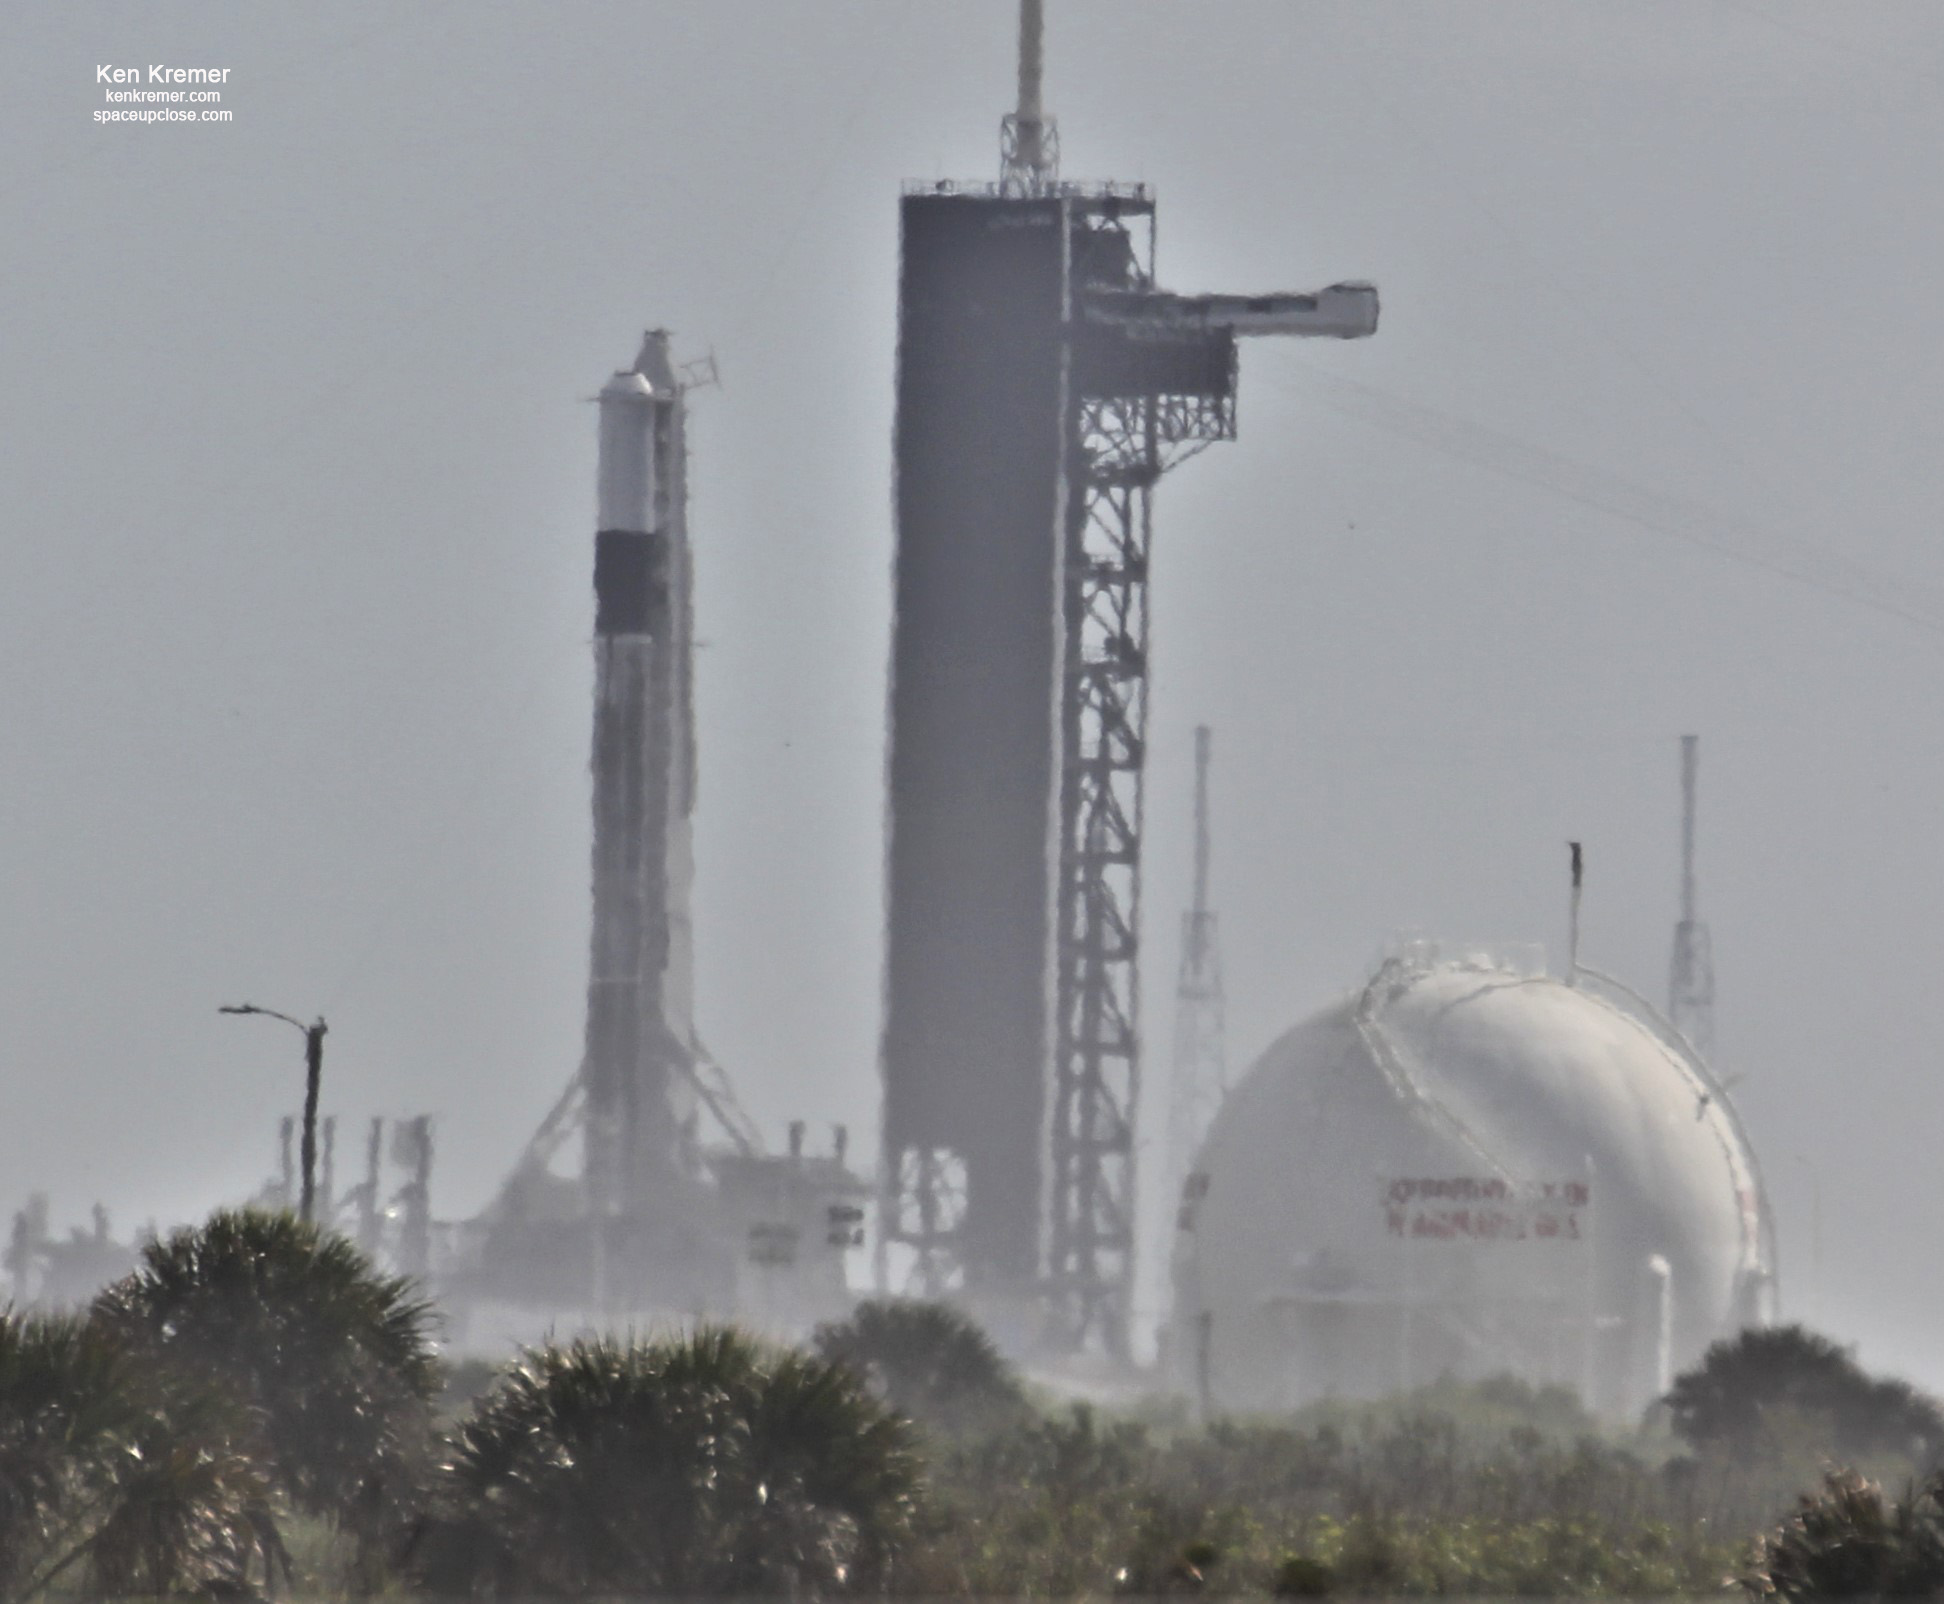 SpaceX Rolls out and Raises Falcon 9 for Test Fire of Crew Dragon In-Flight Abort Test, KSC Launch Reset to Jan 18